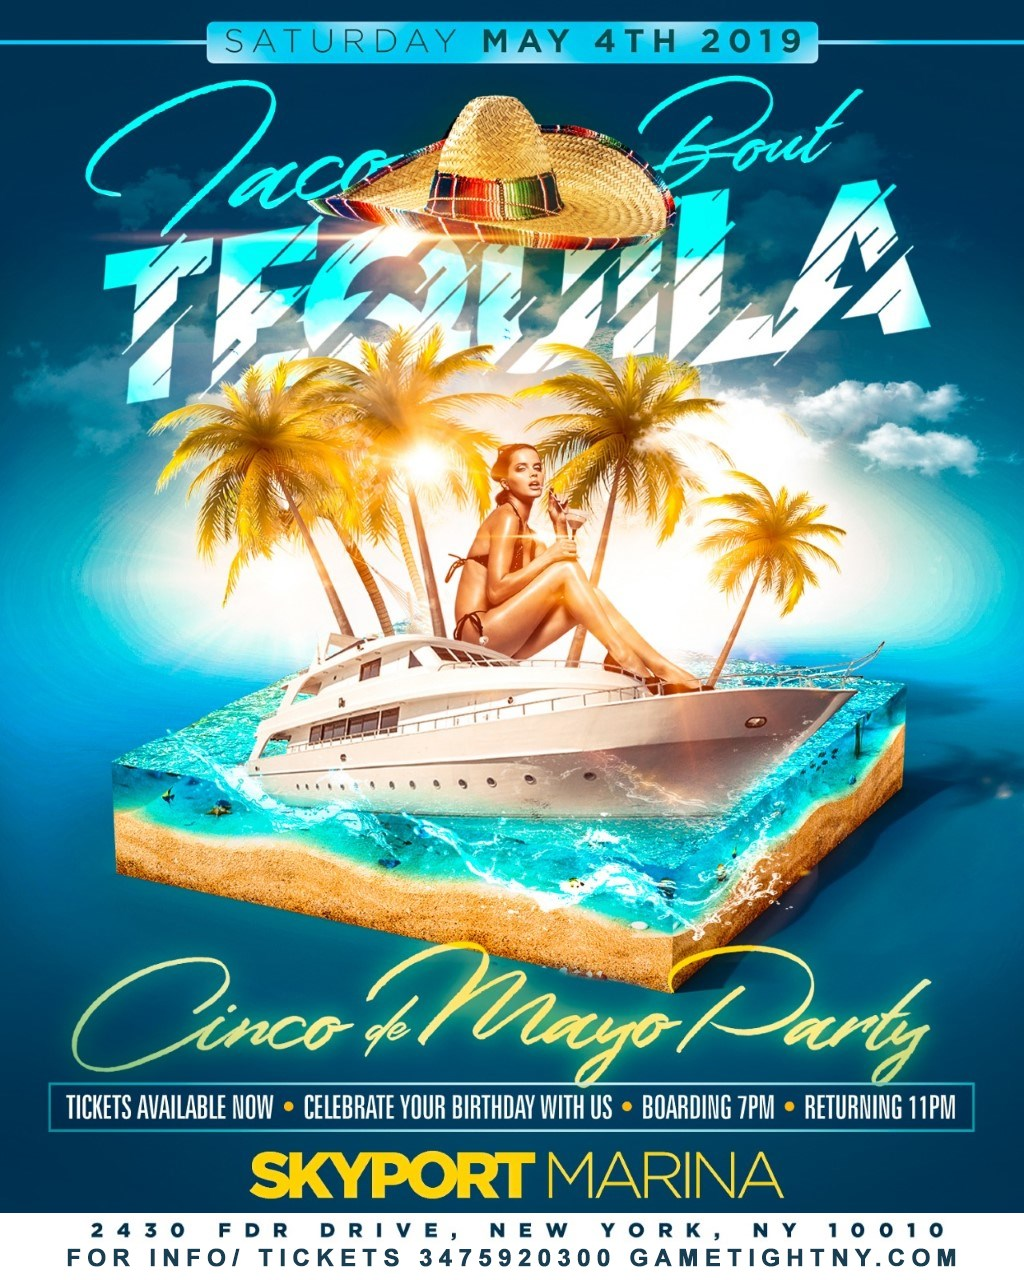 NYC Cinco de Mayo Yacht Party Cruise at Skyport Marina 2019 NYC Cinco de Mayo Yacht Party Cruise at Skyport Marina 2019 on May 04, 19:00@Skyport Marina - Buy tickets and Get information on GametightNY